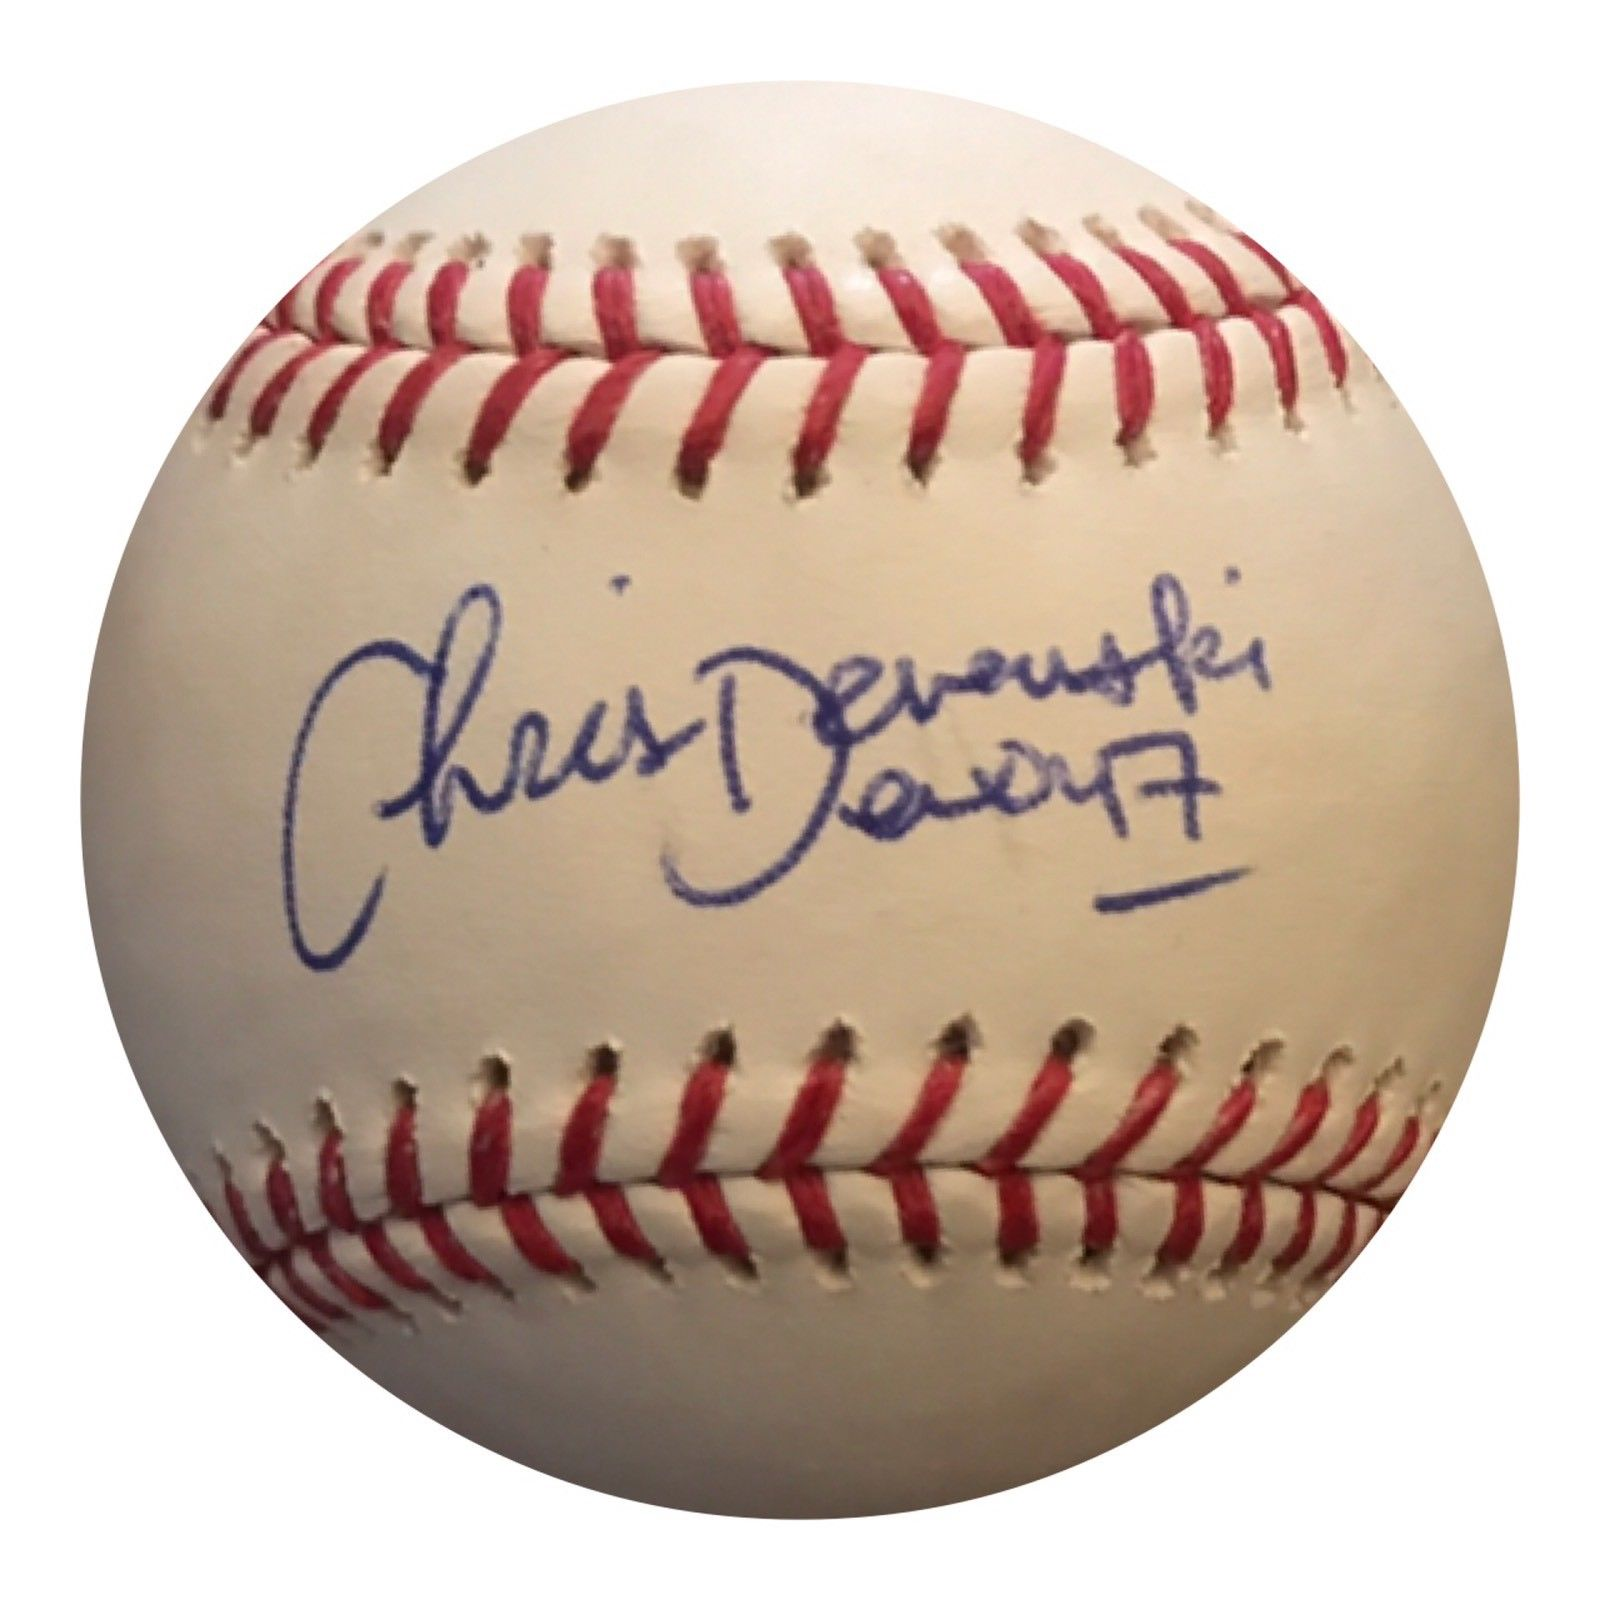 Chris Devenski Authentic Signed 2017 World Series Baseball (COA) HOUSTON ASTROS - Top Notch Signatures LLC